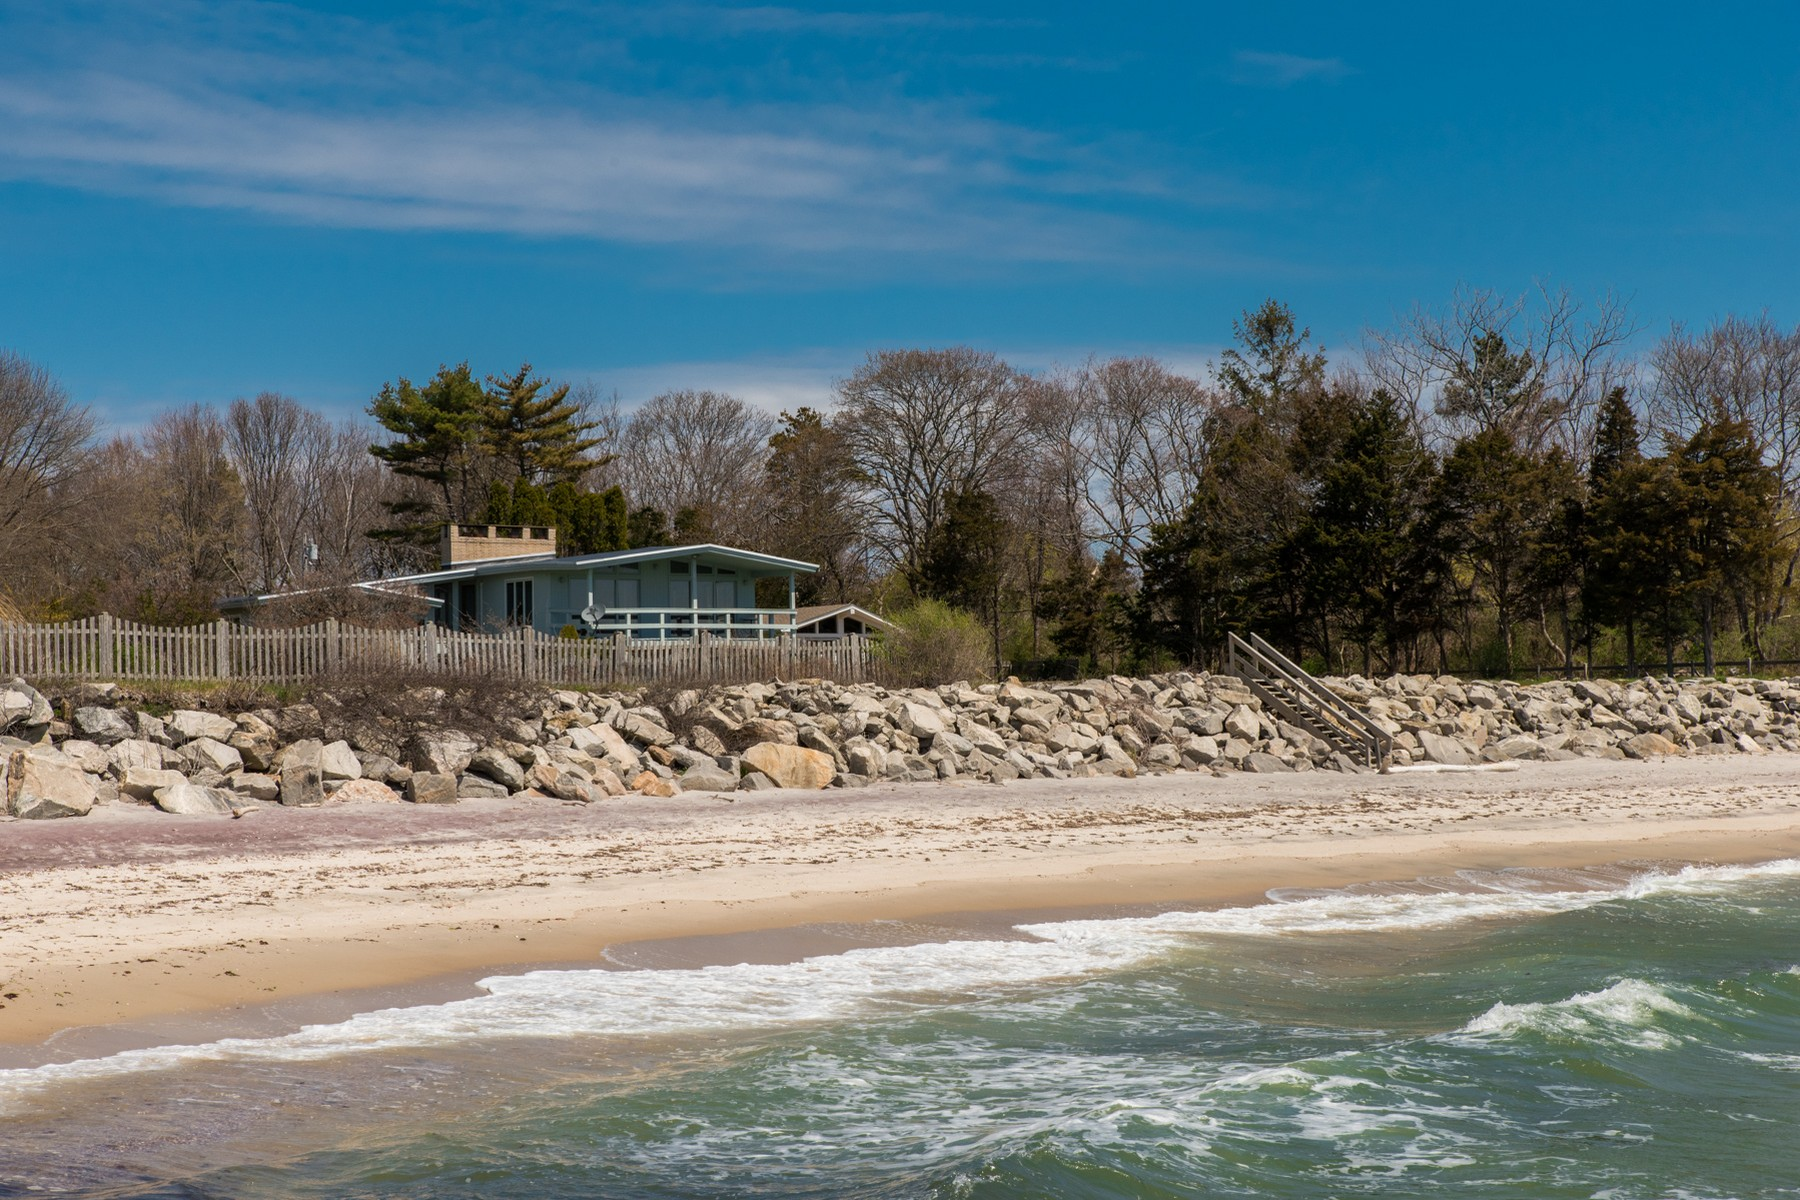 Casa Unifamiliar por un Venta en Private Beach with Unobstructed Views 14 B Shore Rd Waterford, Connecticut, 06385 Estados Unidos